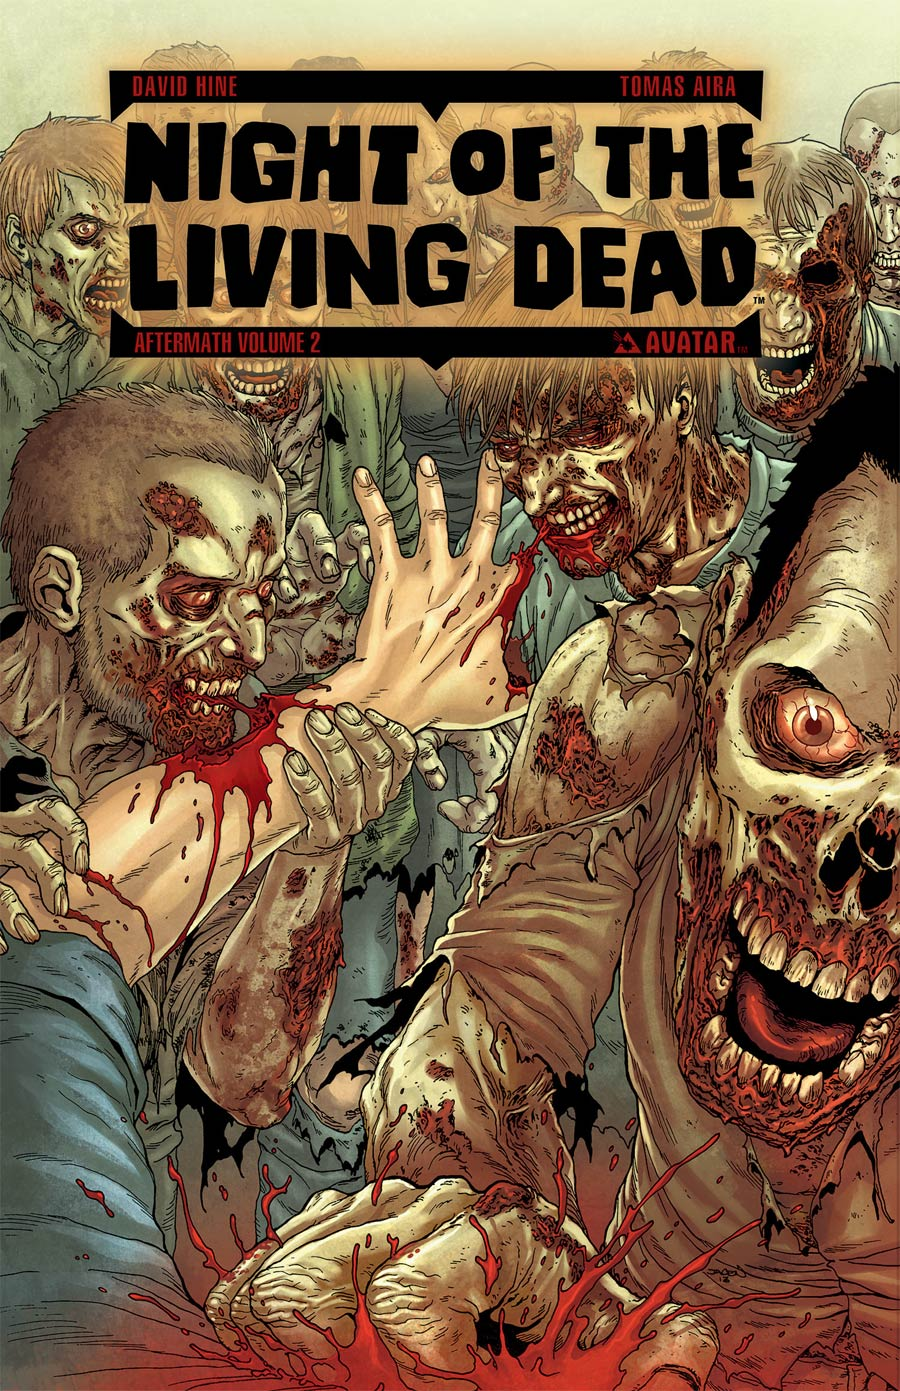 Night Of The Living Dead Aftermath Vol 2 TP